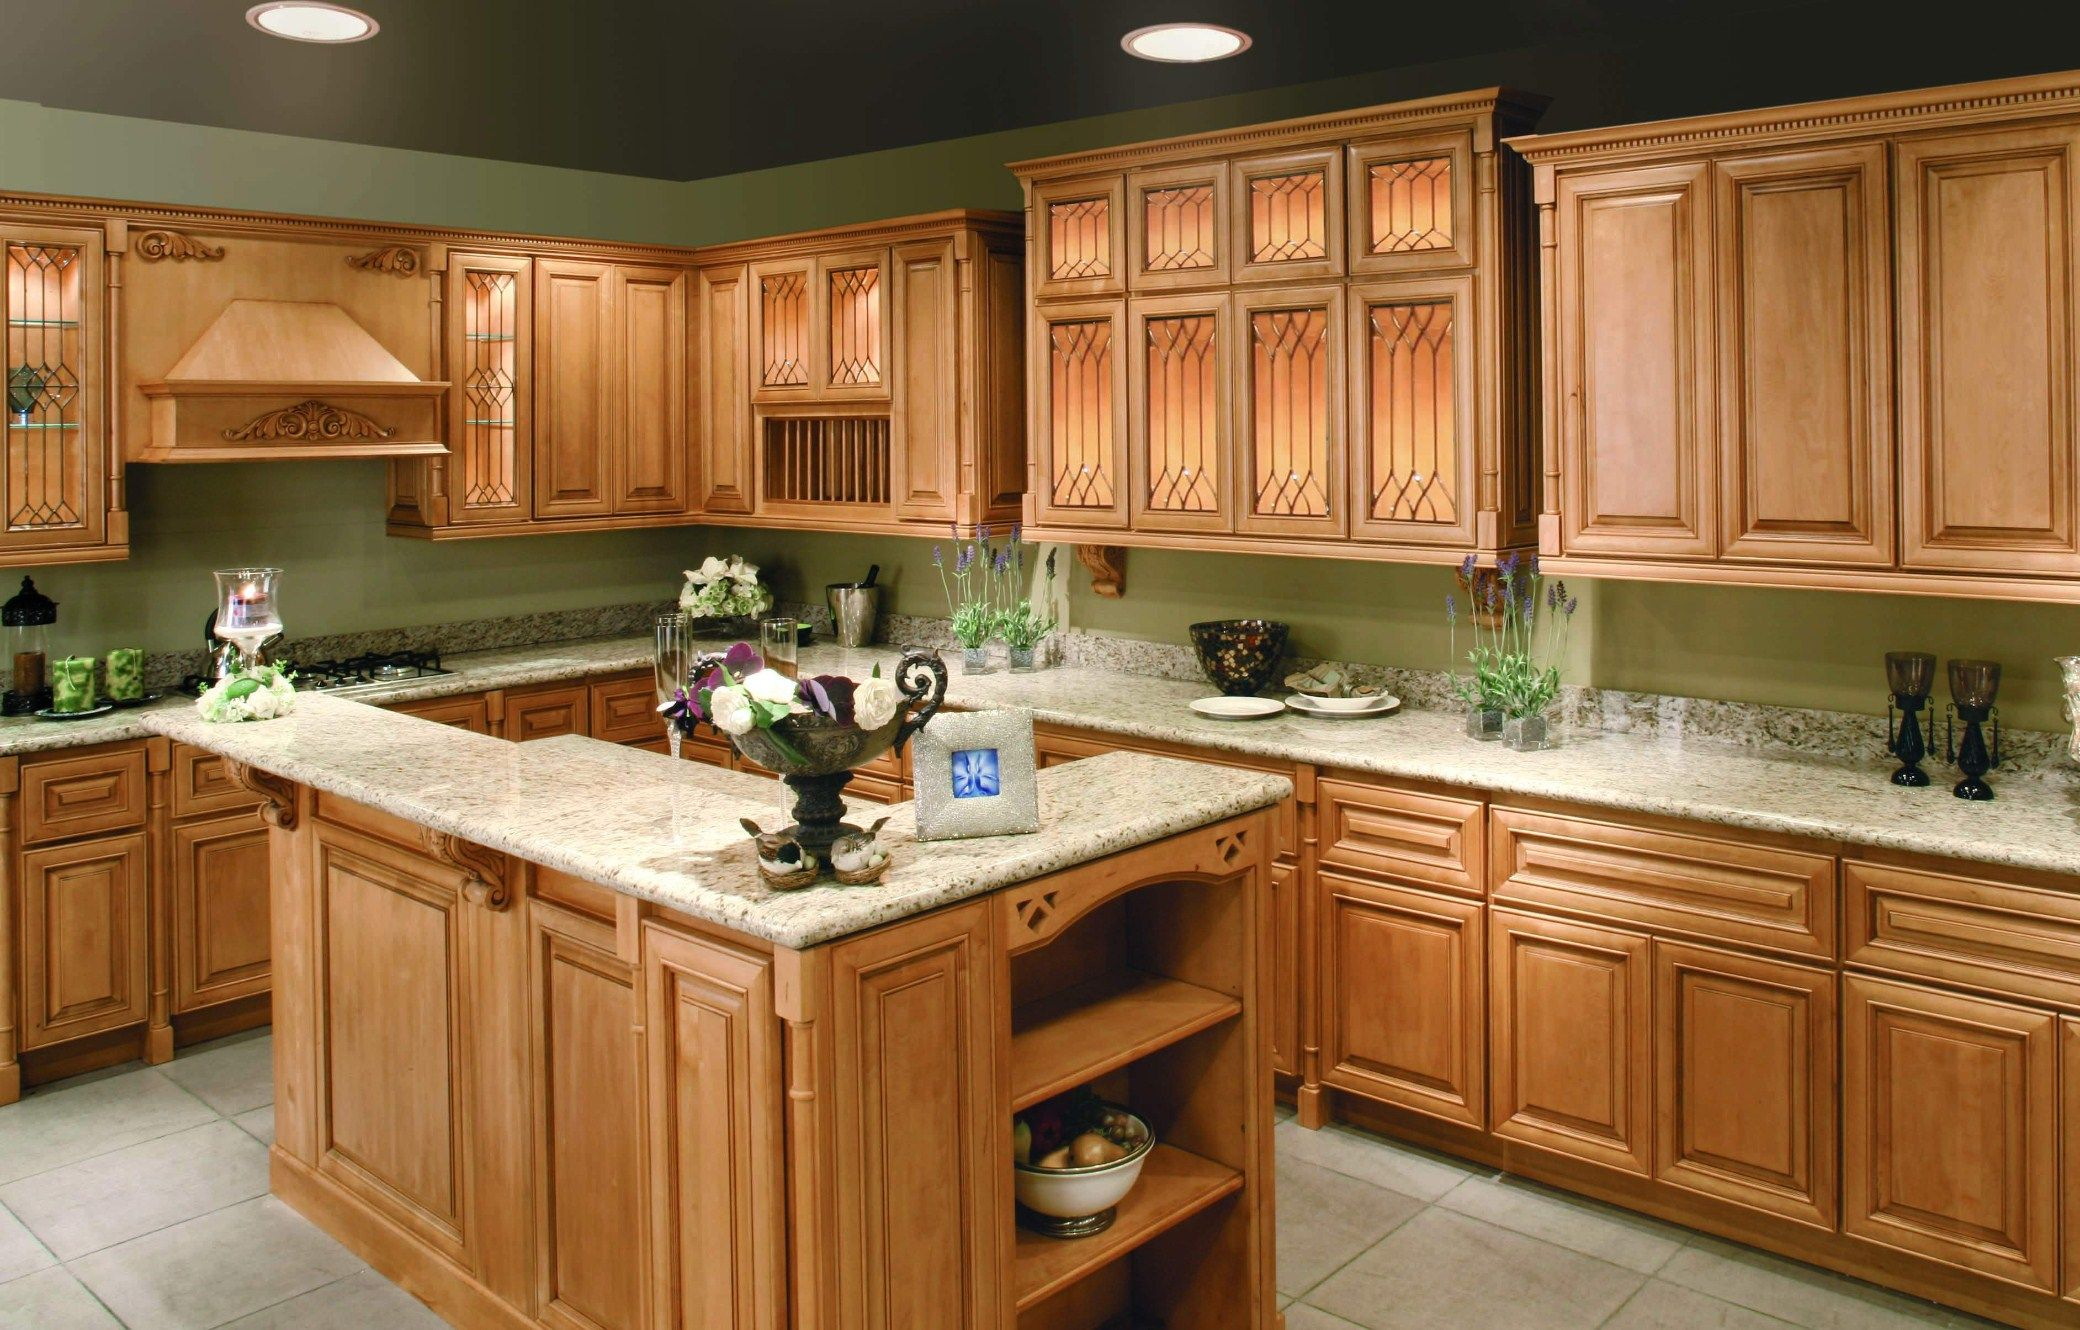 quartz kitchen countertops Kitchen Quartz Countertops With Oak Cabinets Cabinets With White Quartz